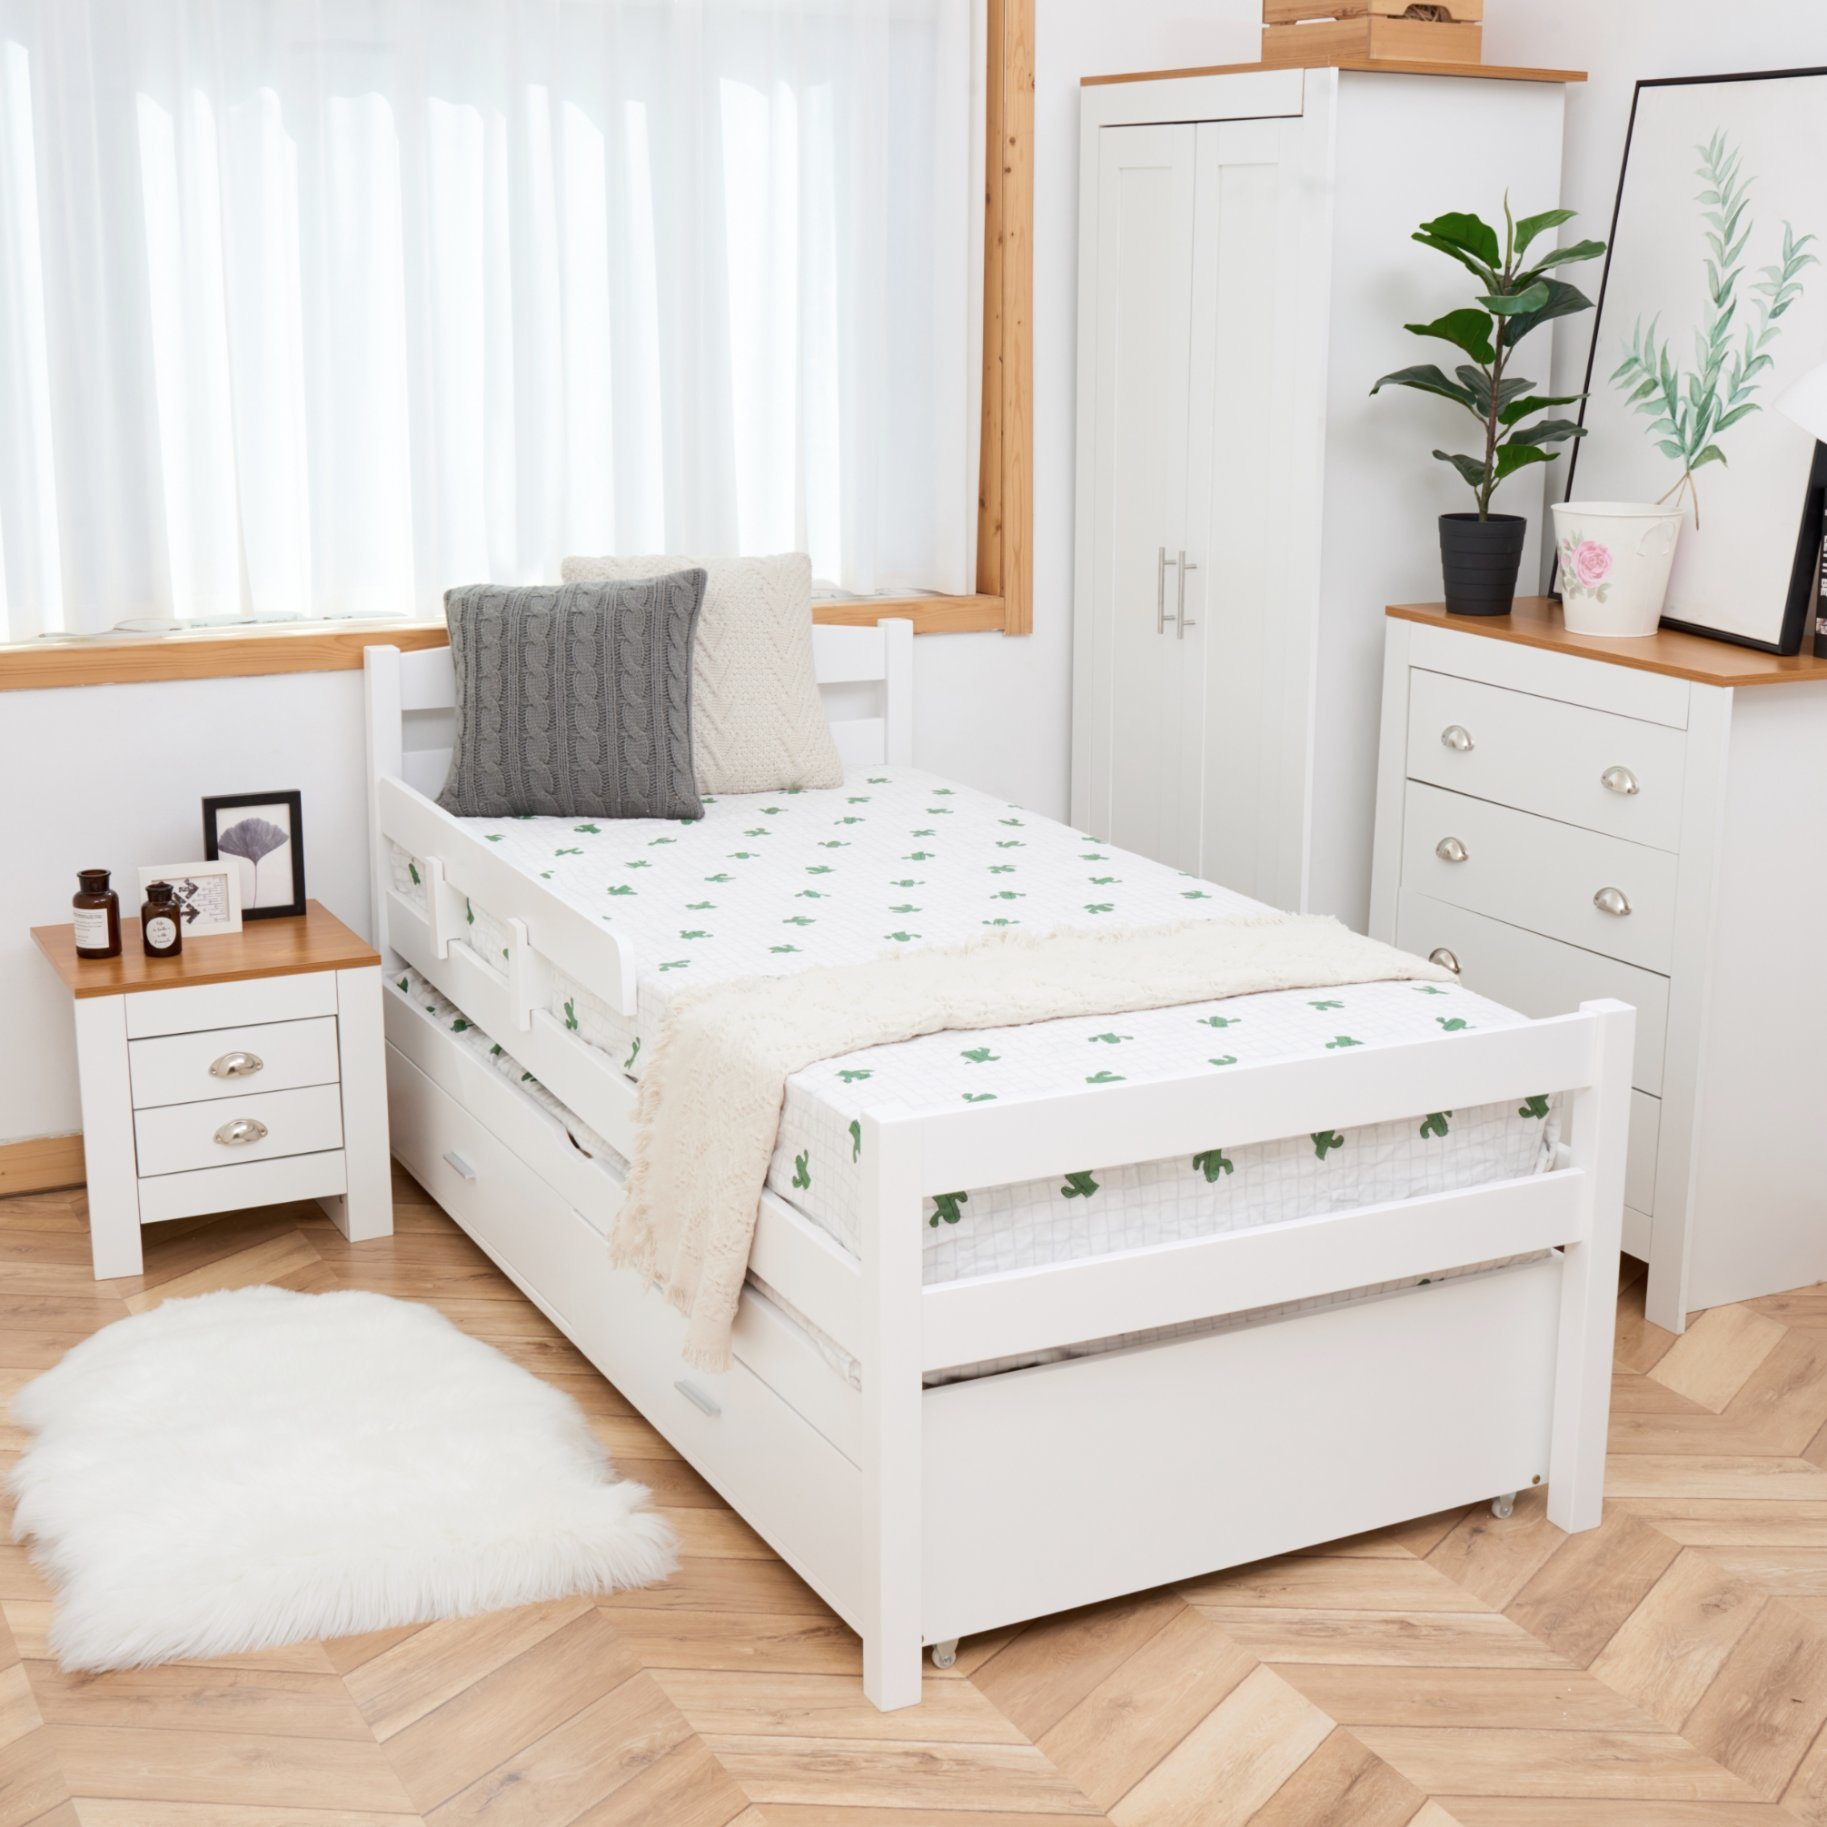 Picture of: China Low Price Kids Wooden Double Beds Single Twin Beds With Trundle For Children China Children Bed Kids Wooden Bed